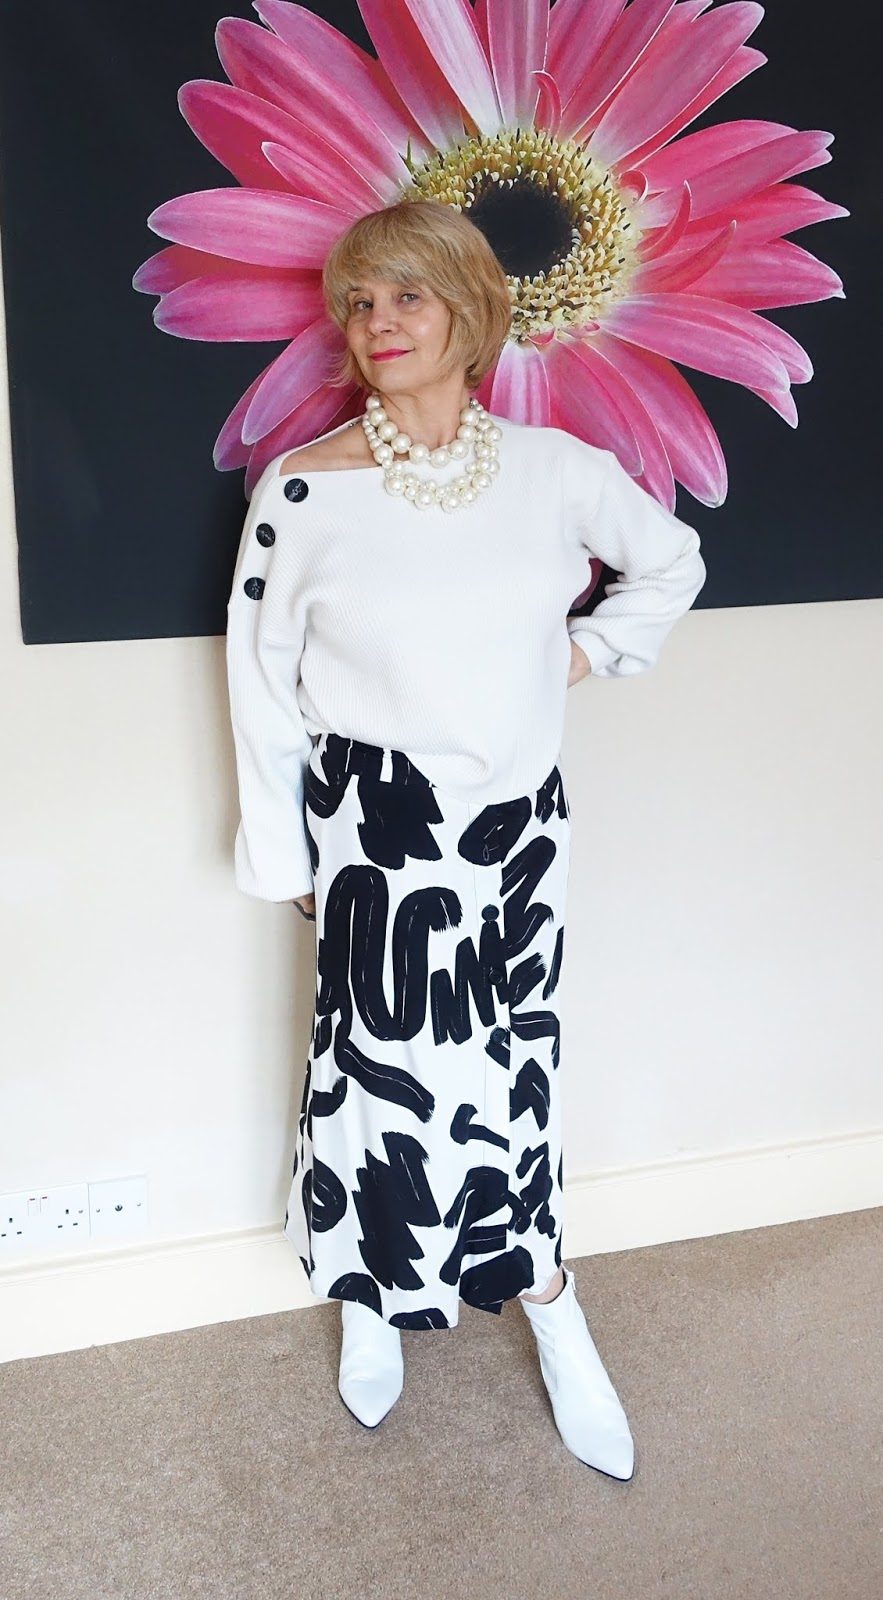 An abstract patterned white and black midi skirt worn with an ivory jumper and white ankle boots. A contemporary look for a woman of any age